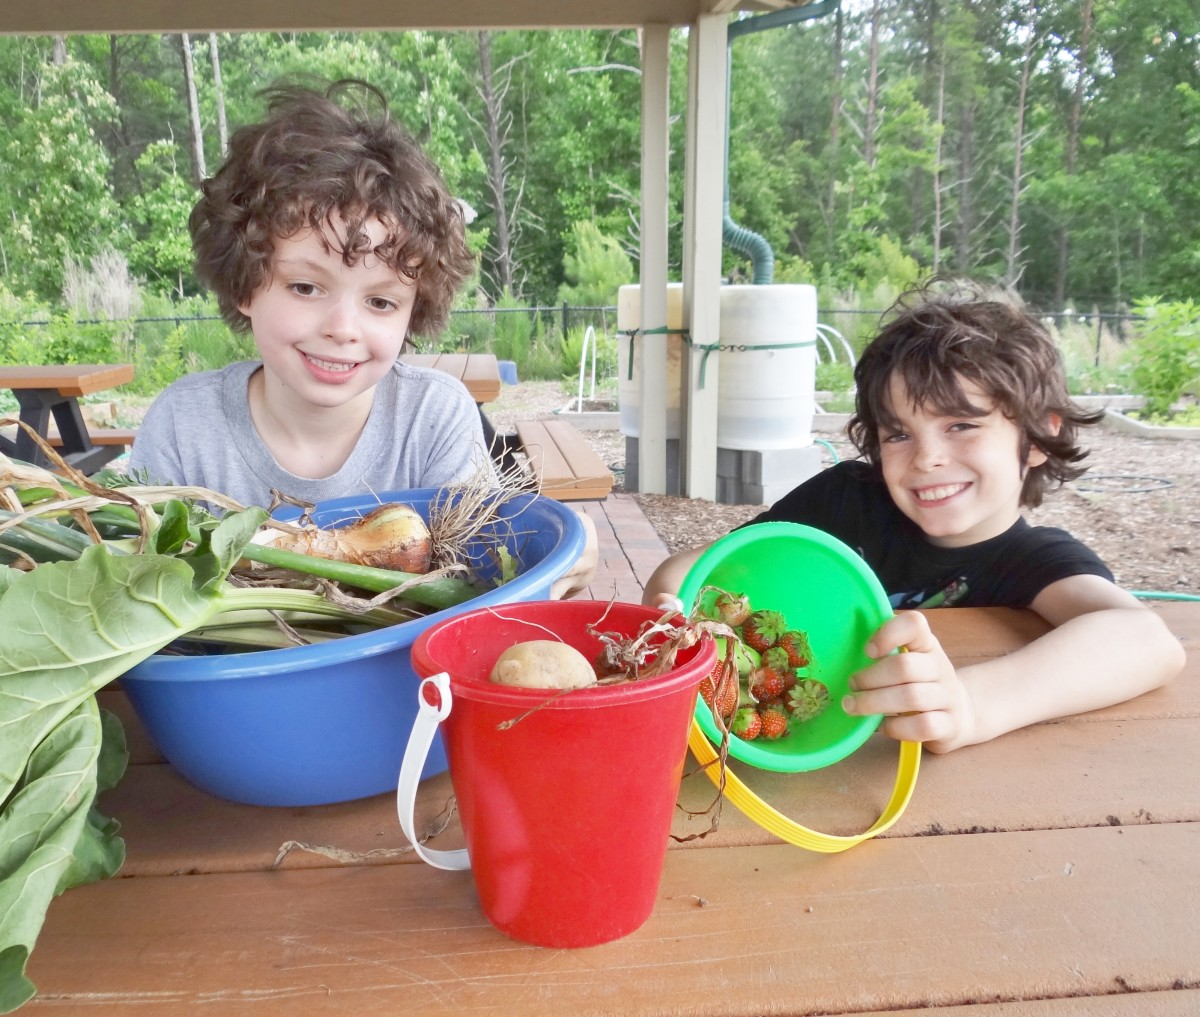 Involving kids in gardening is a great way to help them develop a love of fruits and vegetables